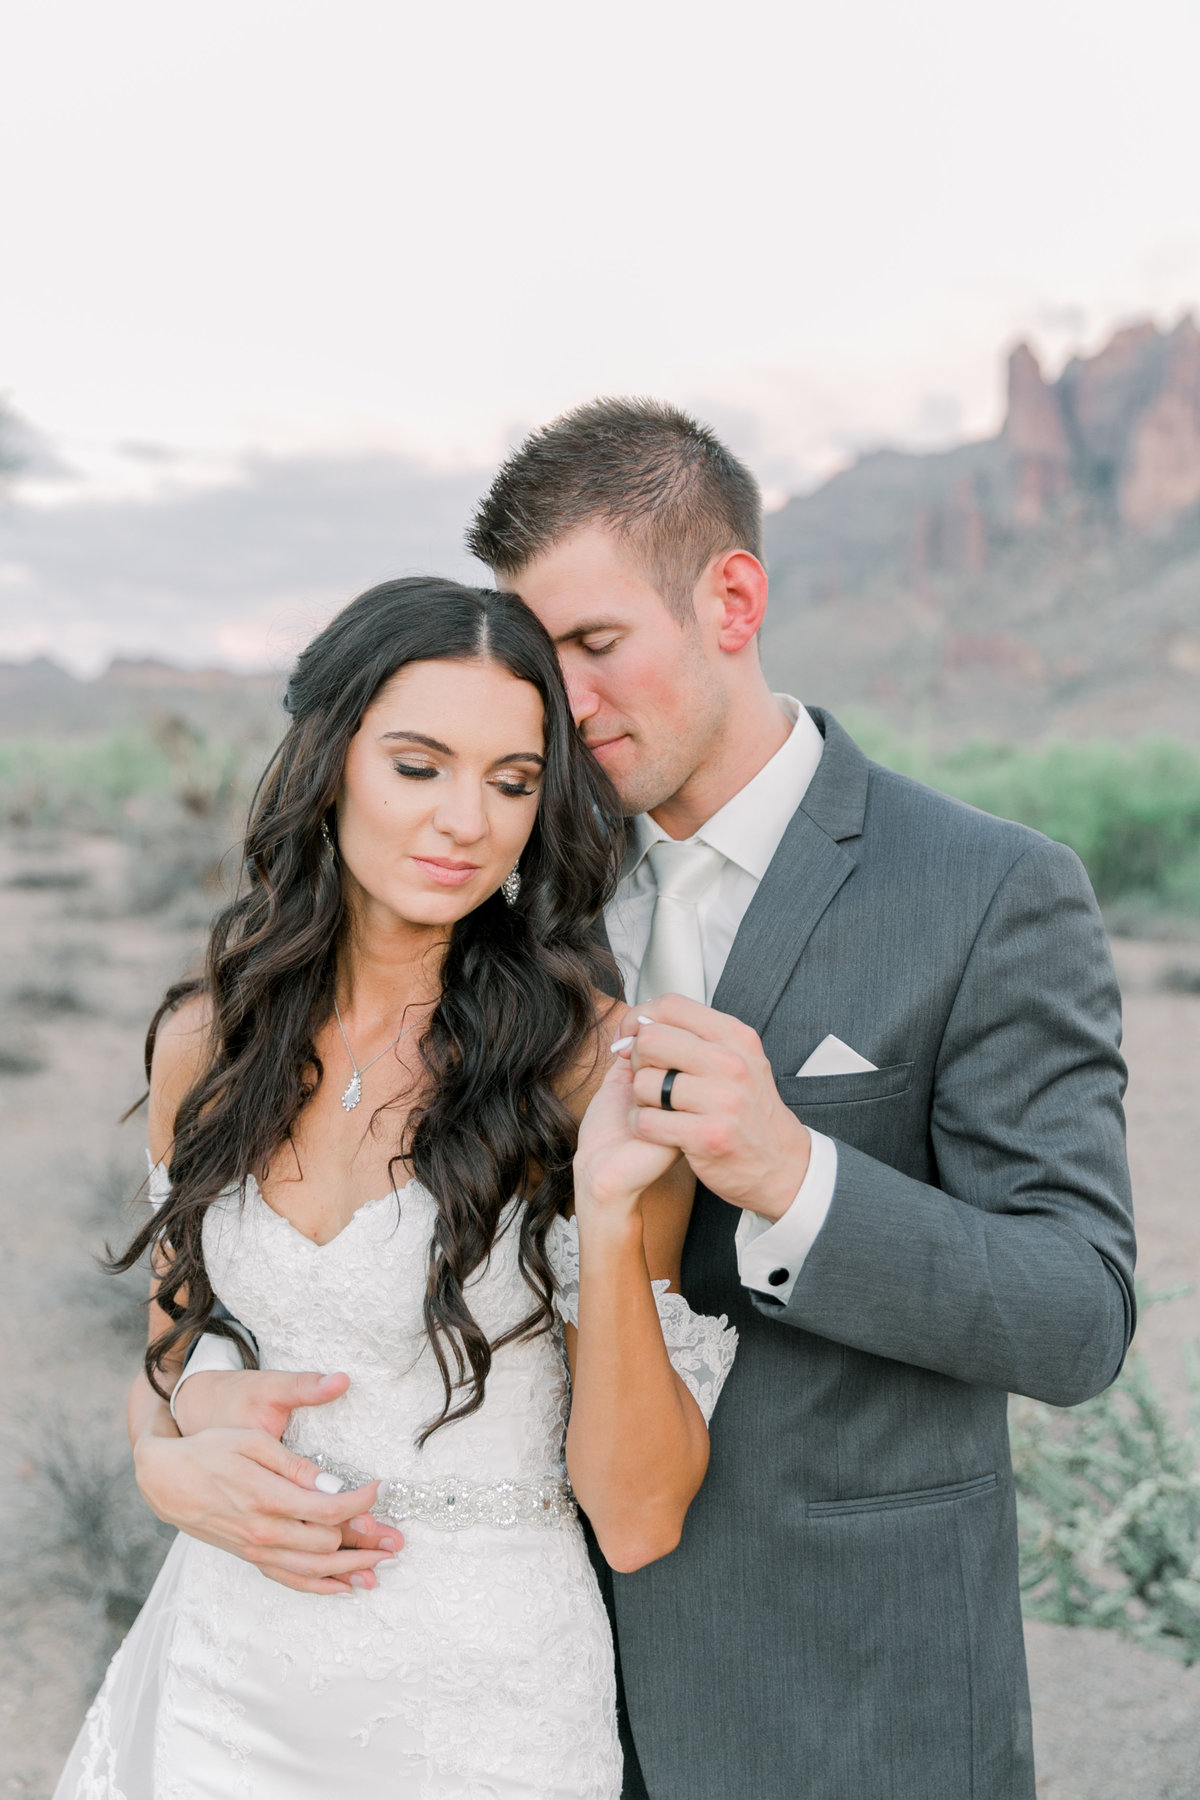 Karlie Colleen Photography - Arizona Wedding - The Paseo Venue - Jackie & Ryan -700